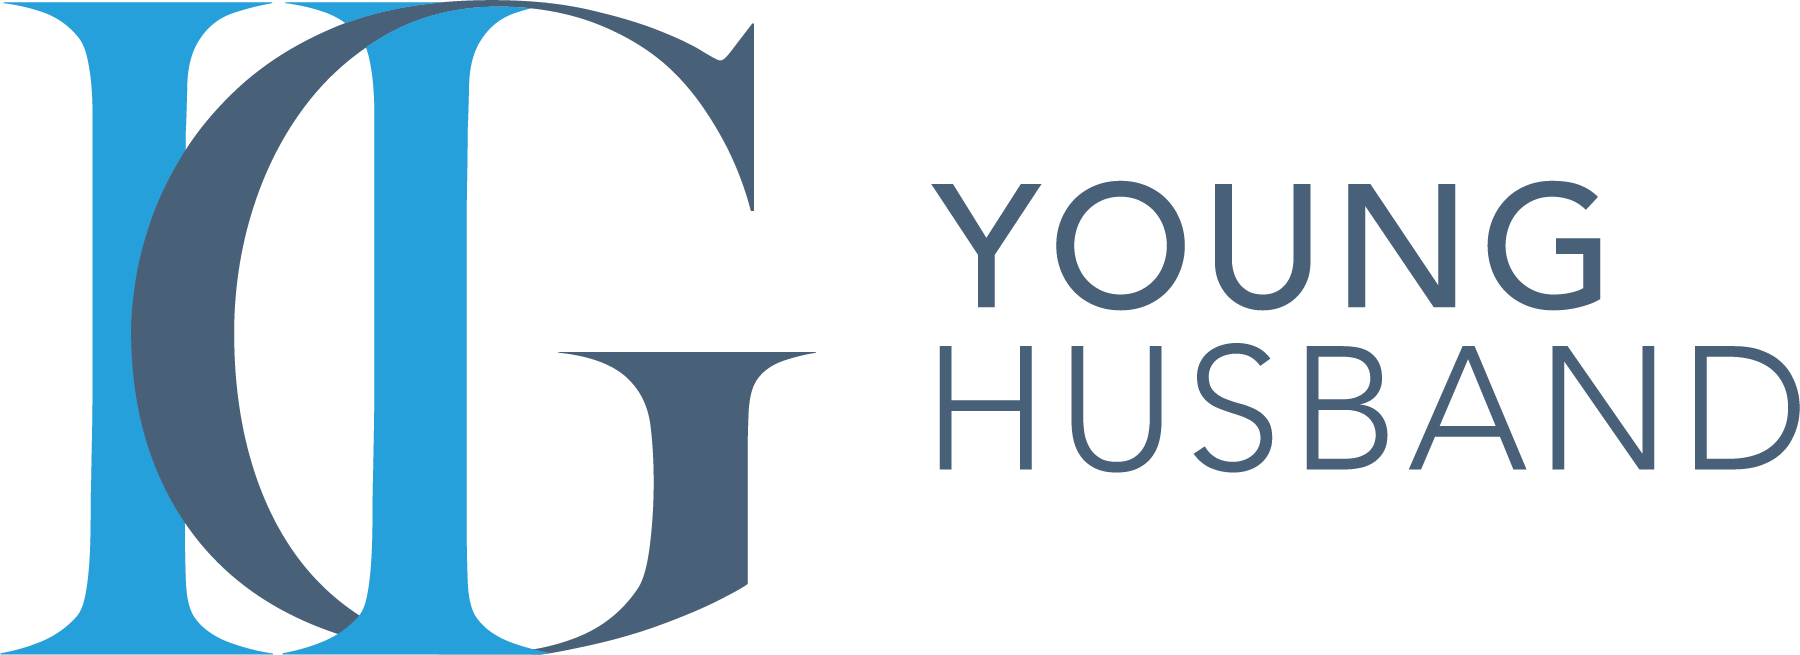 Younghusband-web-colour-horizontal.png